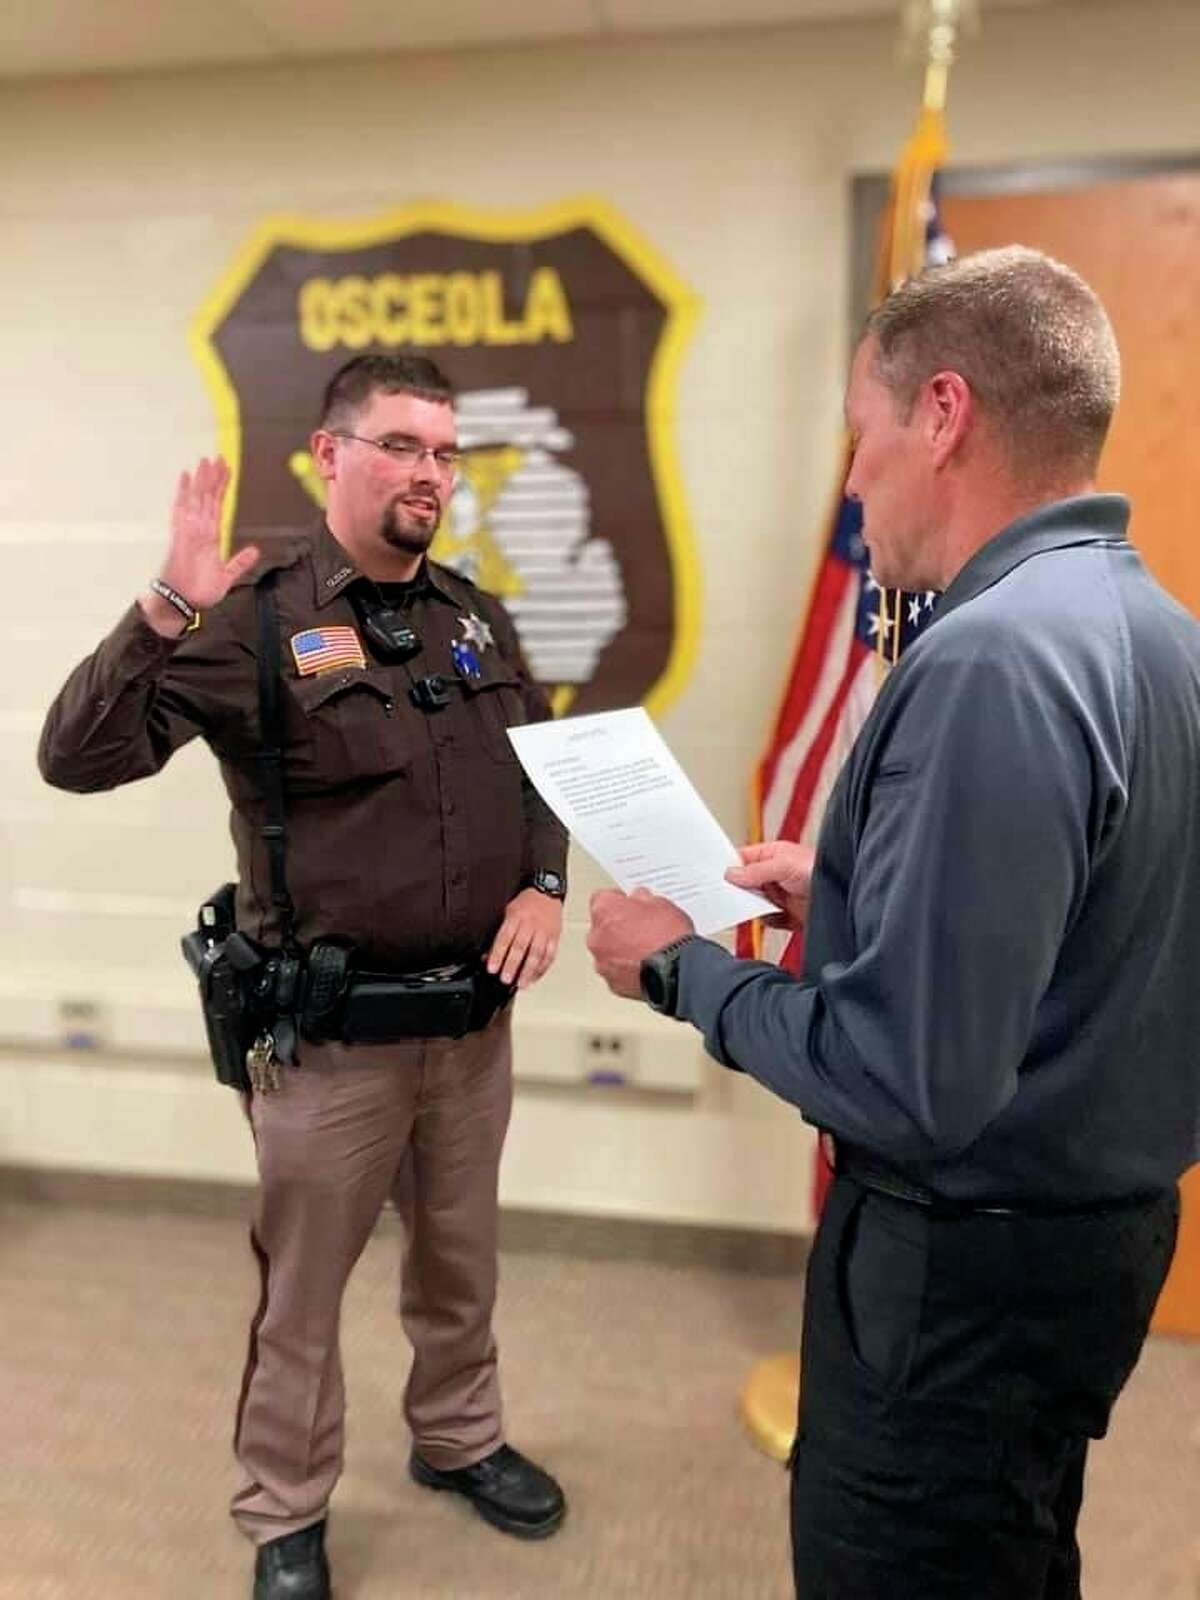 Deputy Ryan Douglas (left) was recently sworn in as the newest member of the Osceola County Sheriff's Office. (Submitted photo)